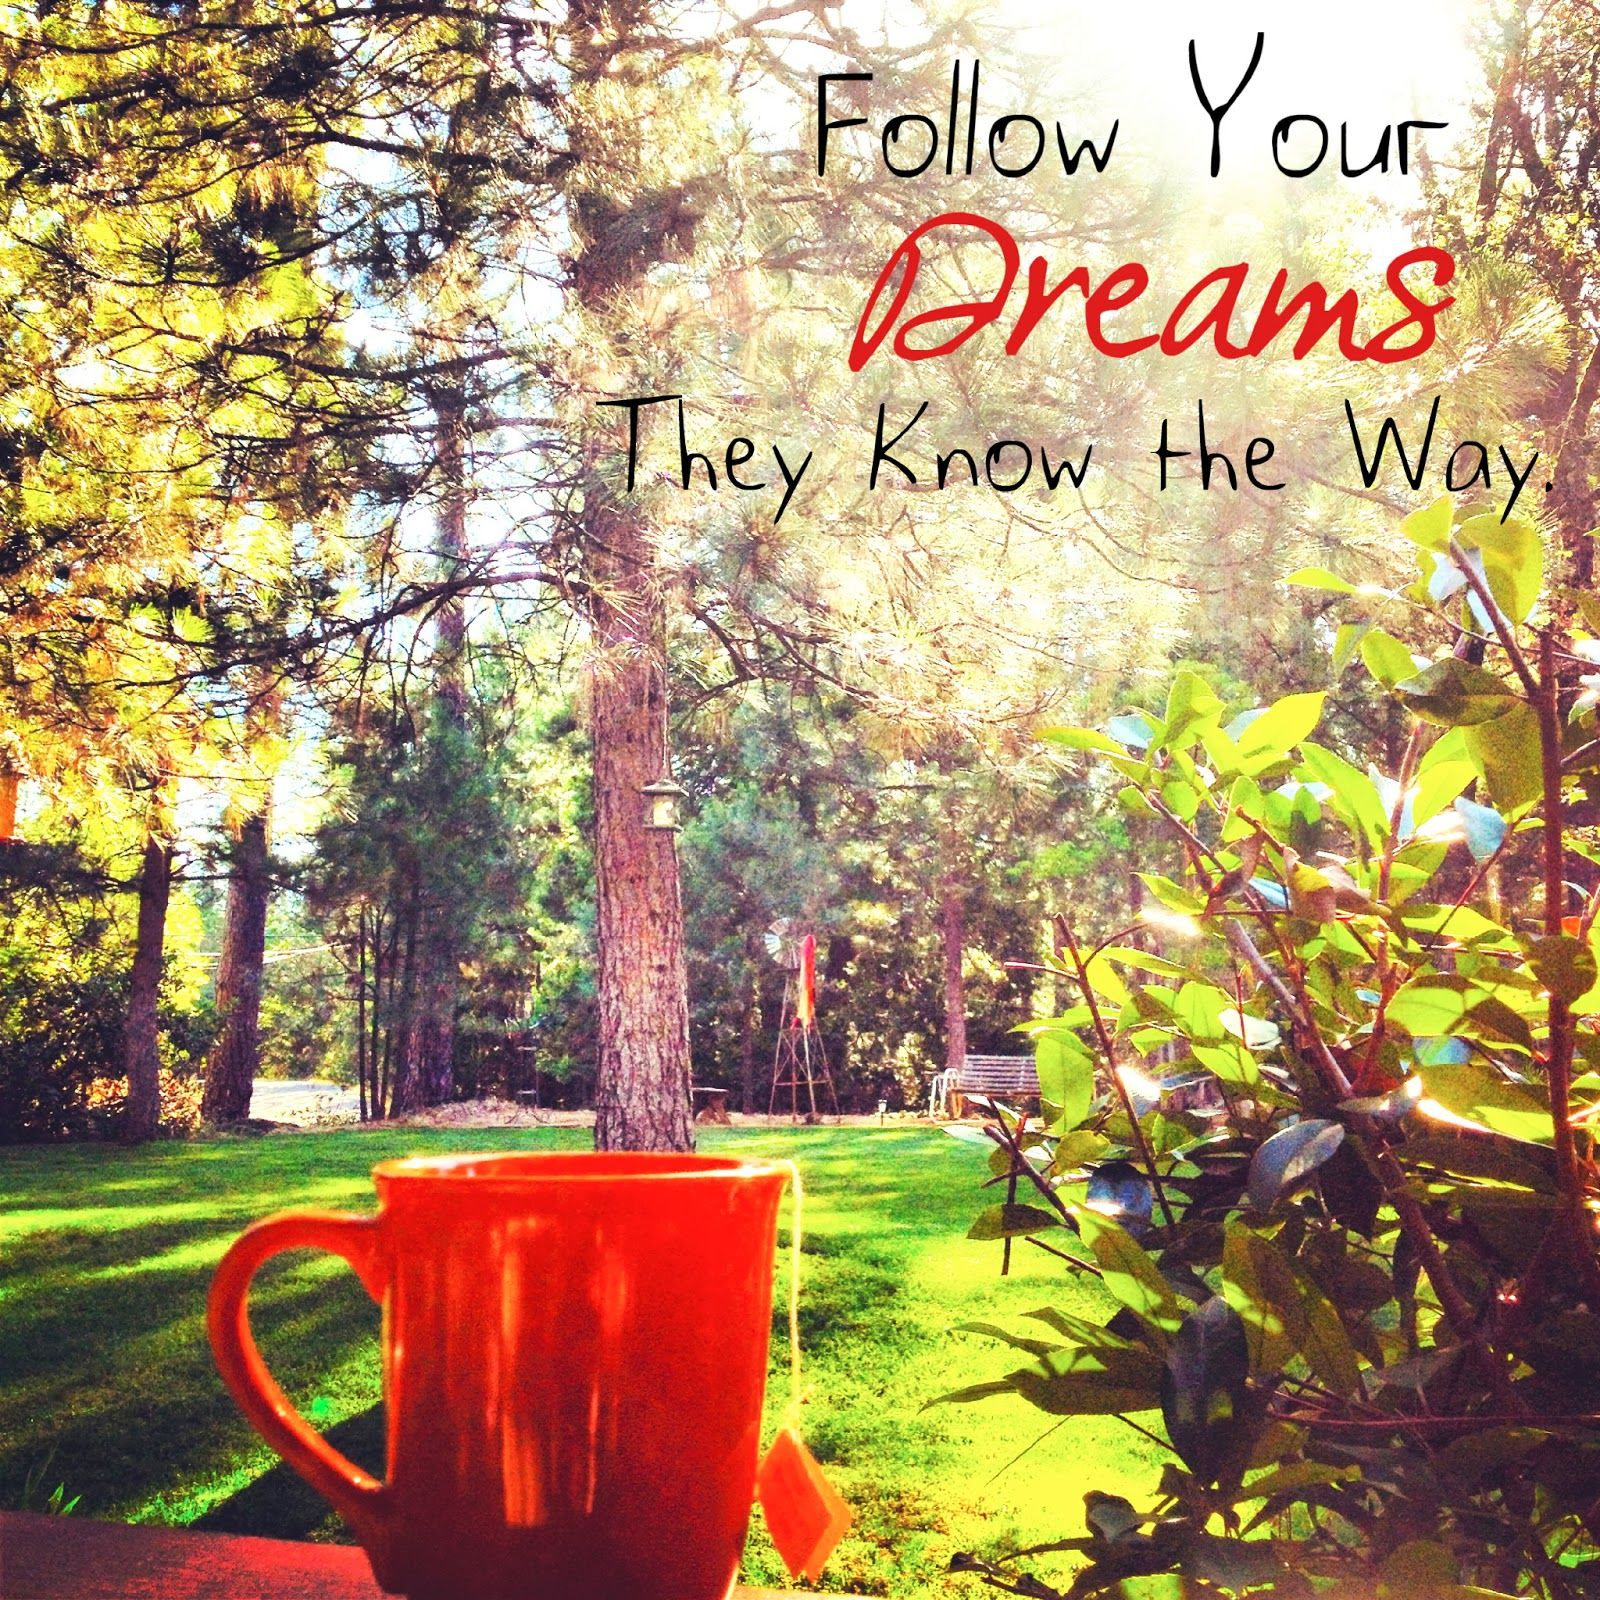 Dream Of Log Home Do Your Homework: Follow Your Dreams, They Know The Way Pictures, Photos